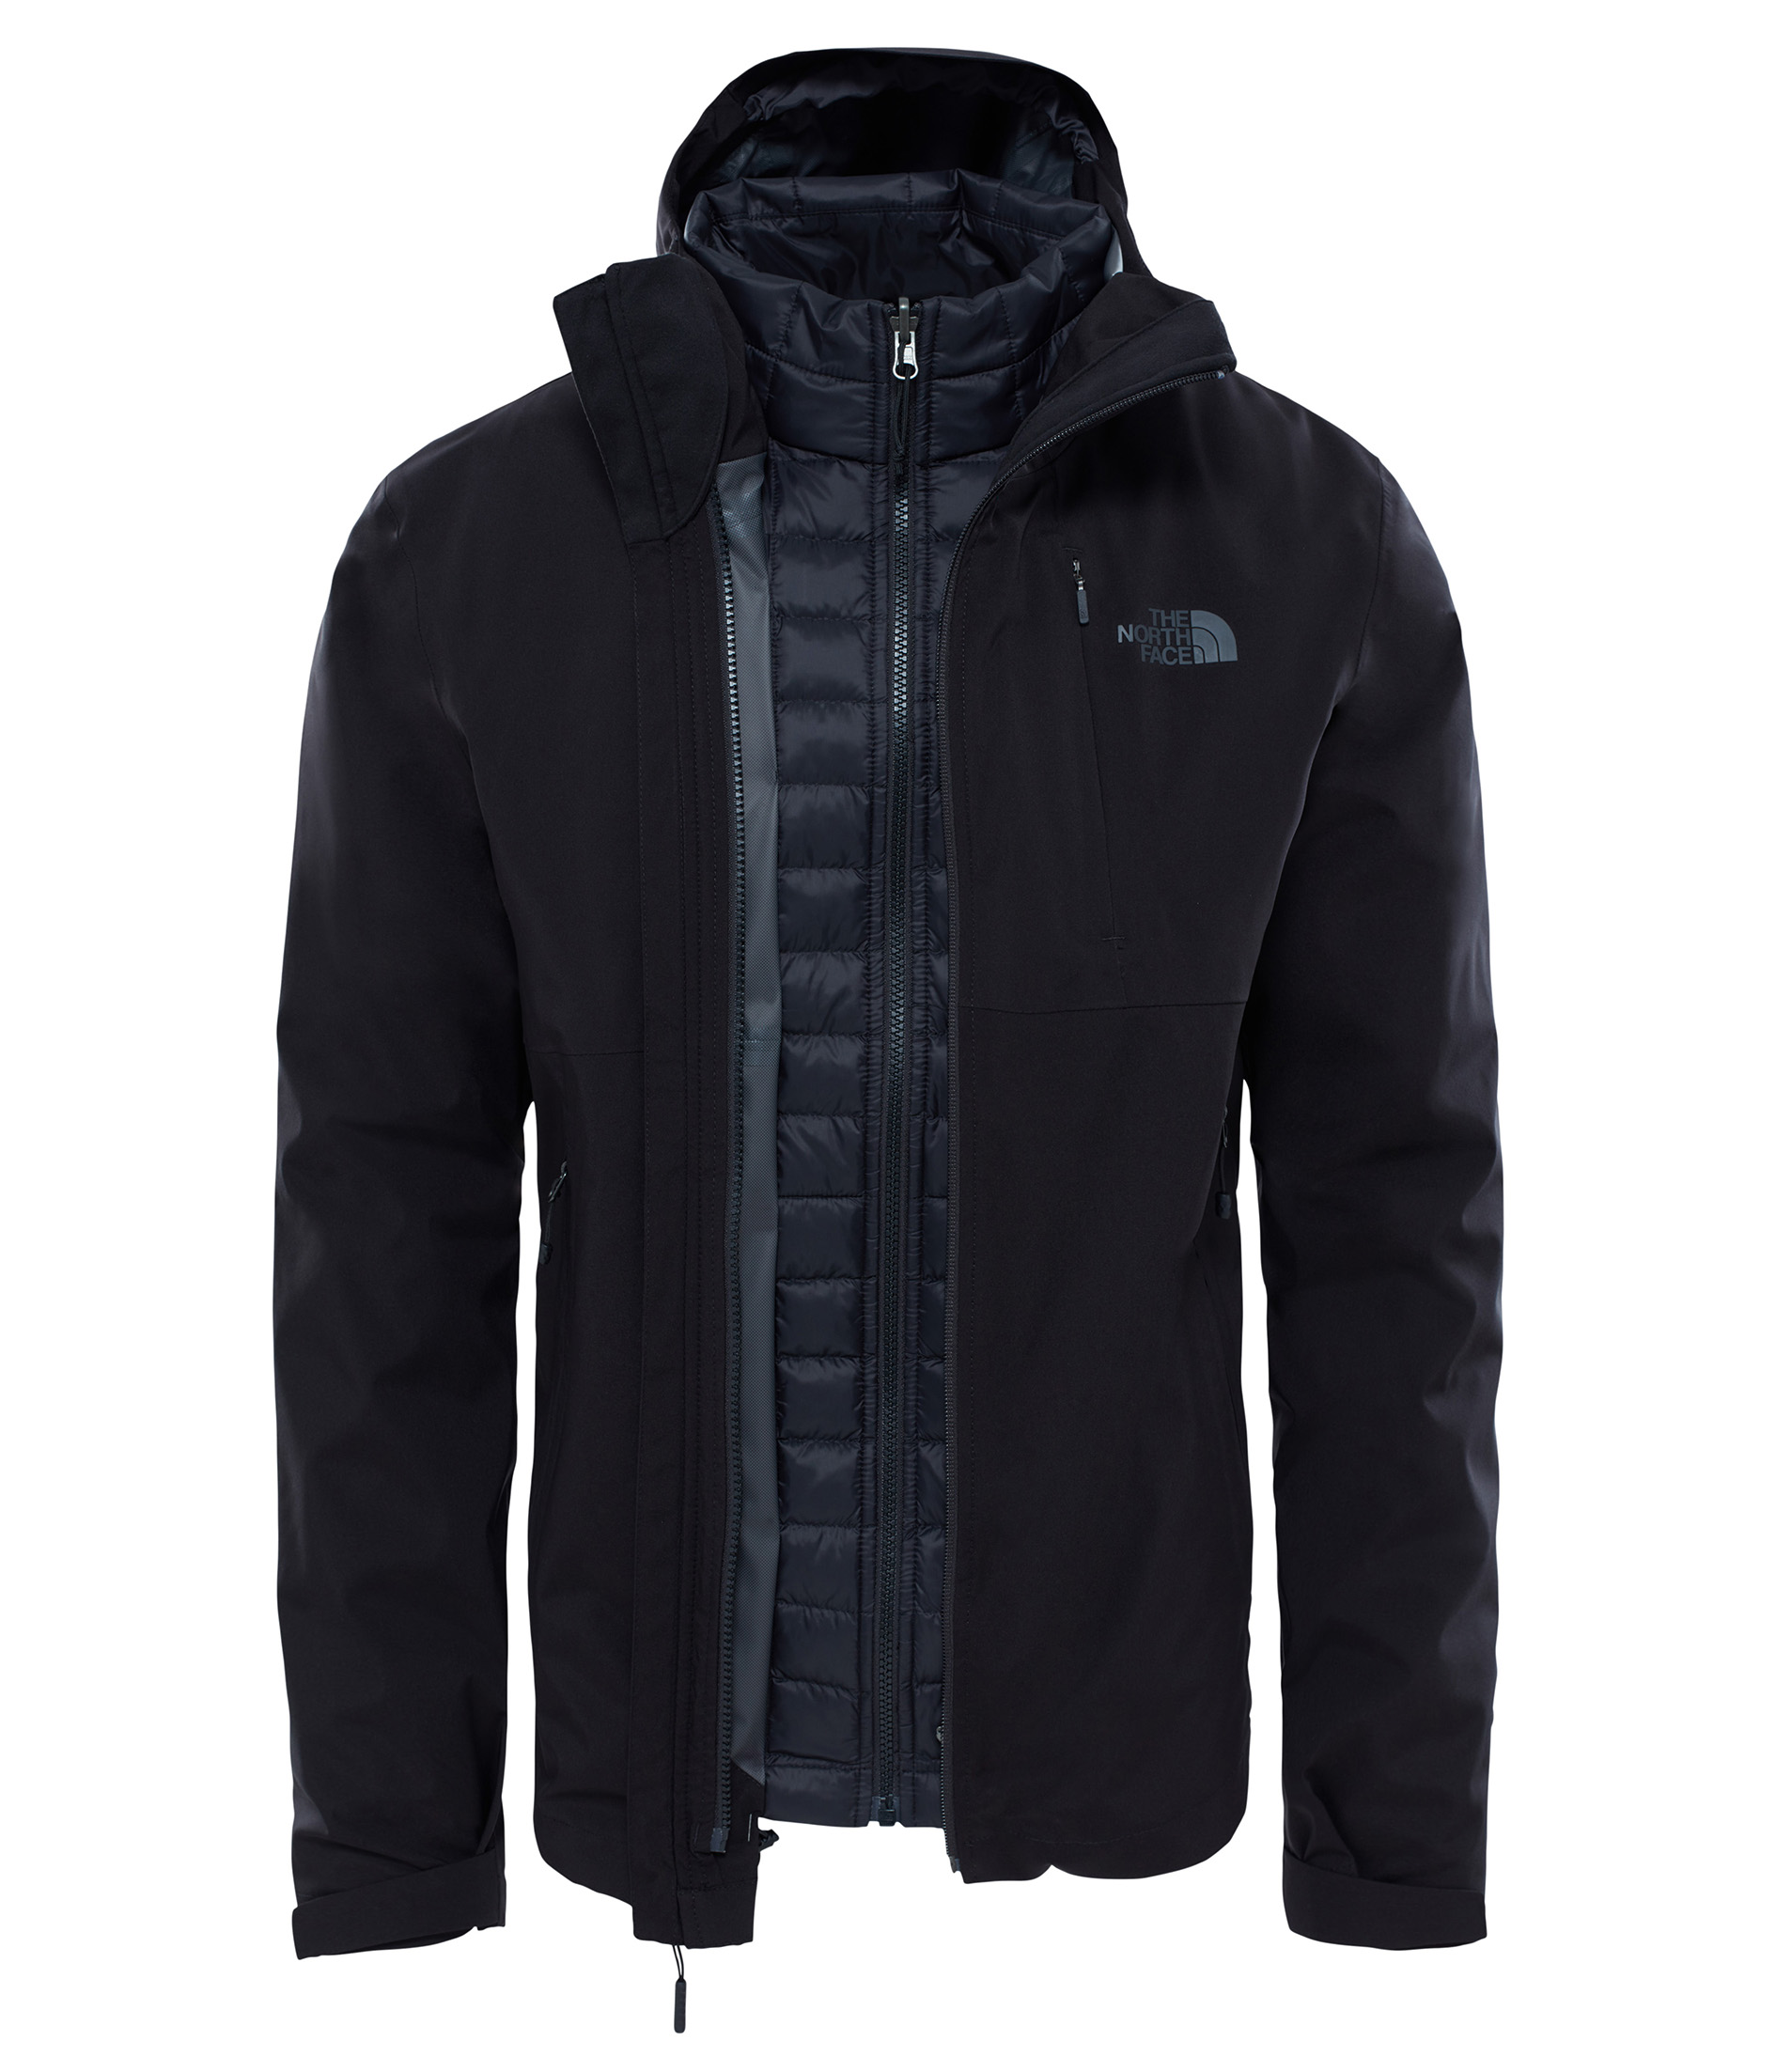 1df6470211 The-North-Face-Thermoball-TRIC-Jacket-Internal-TNF-Black-AW17-T93827JK3S.jpg